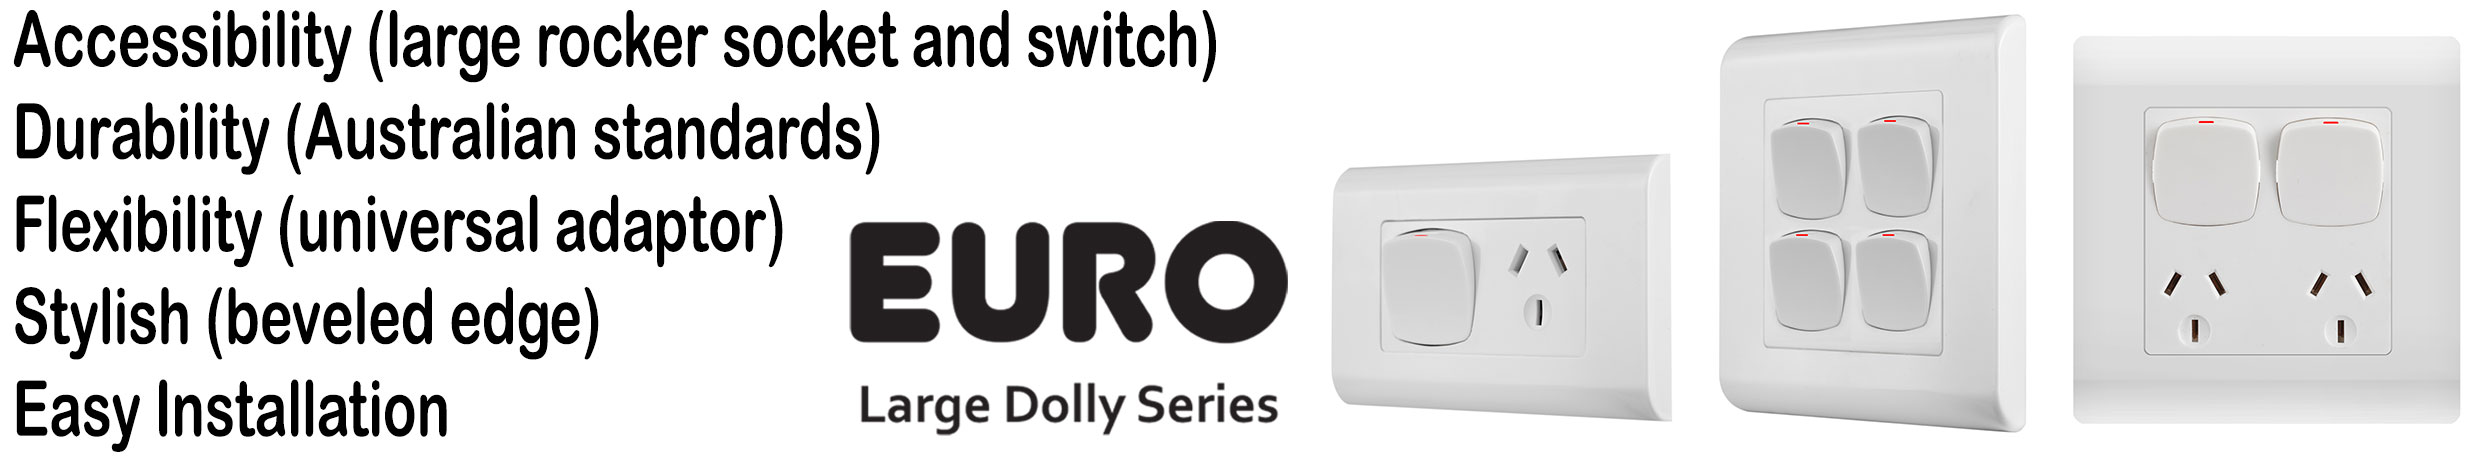 Euro Large Dolly | Outlet and Switch